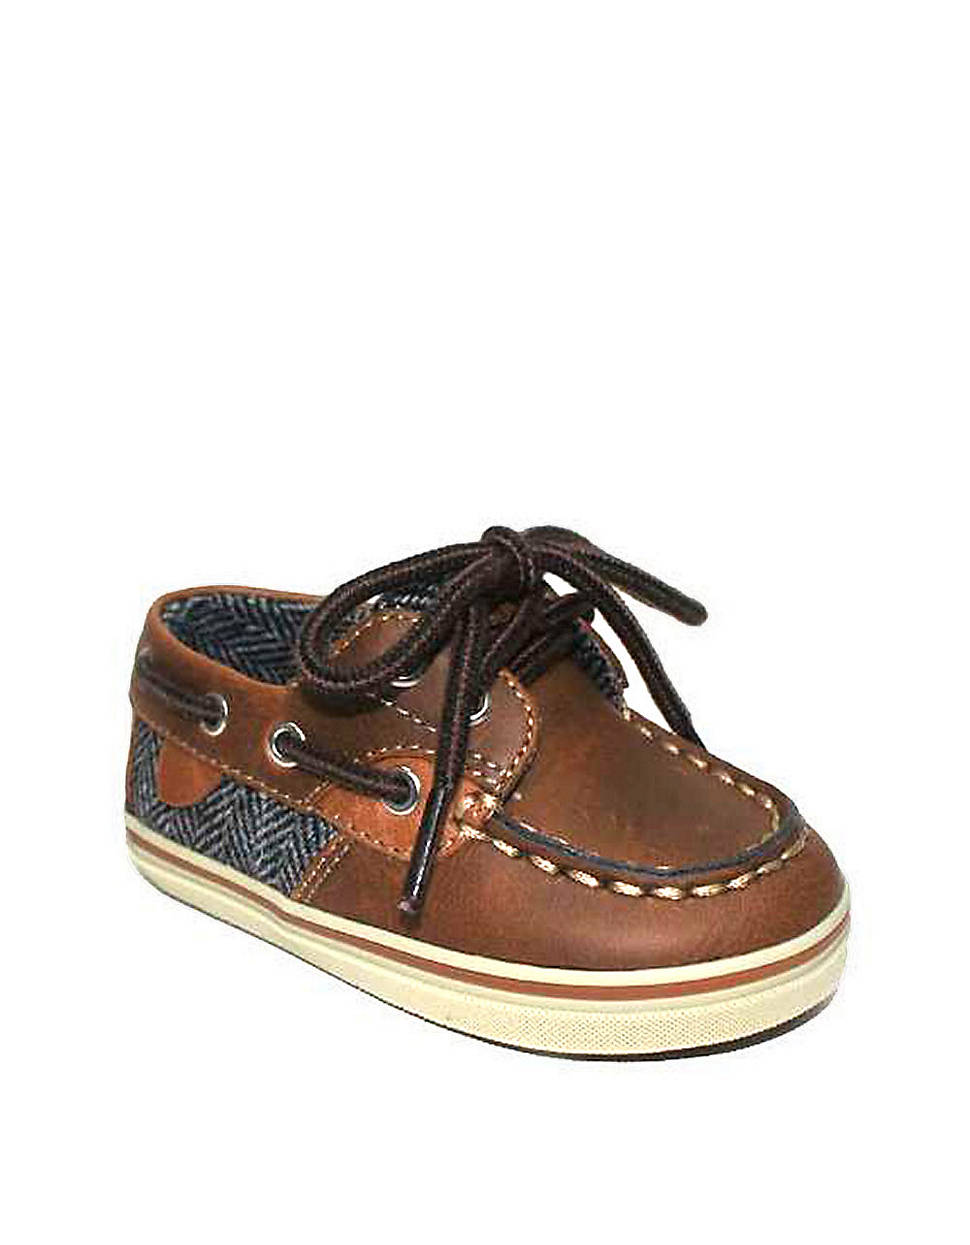 Cole Haan Newborn Boys 09 Months Brown Mini Cory Boat Shoes in Brown